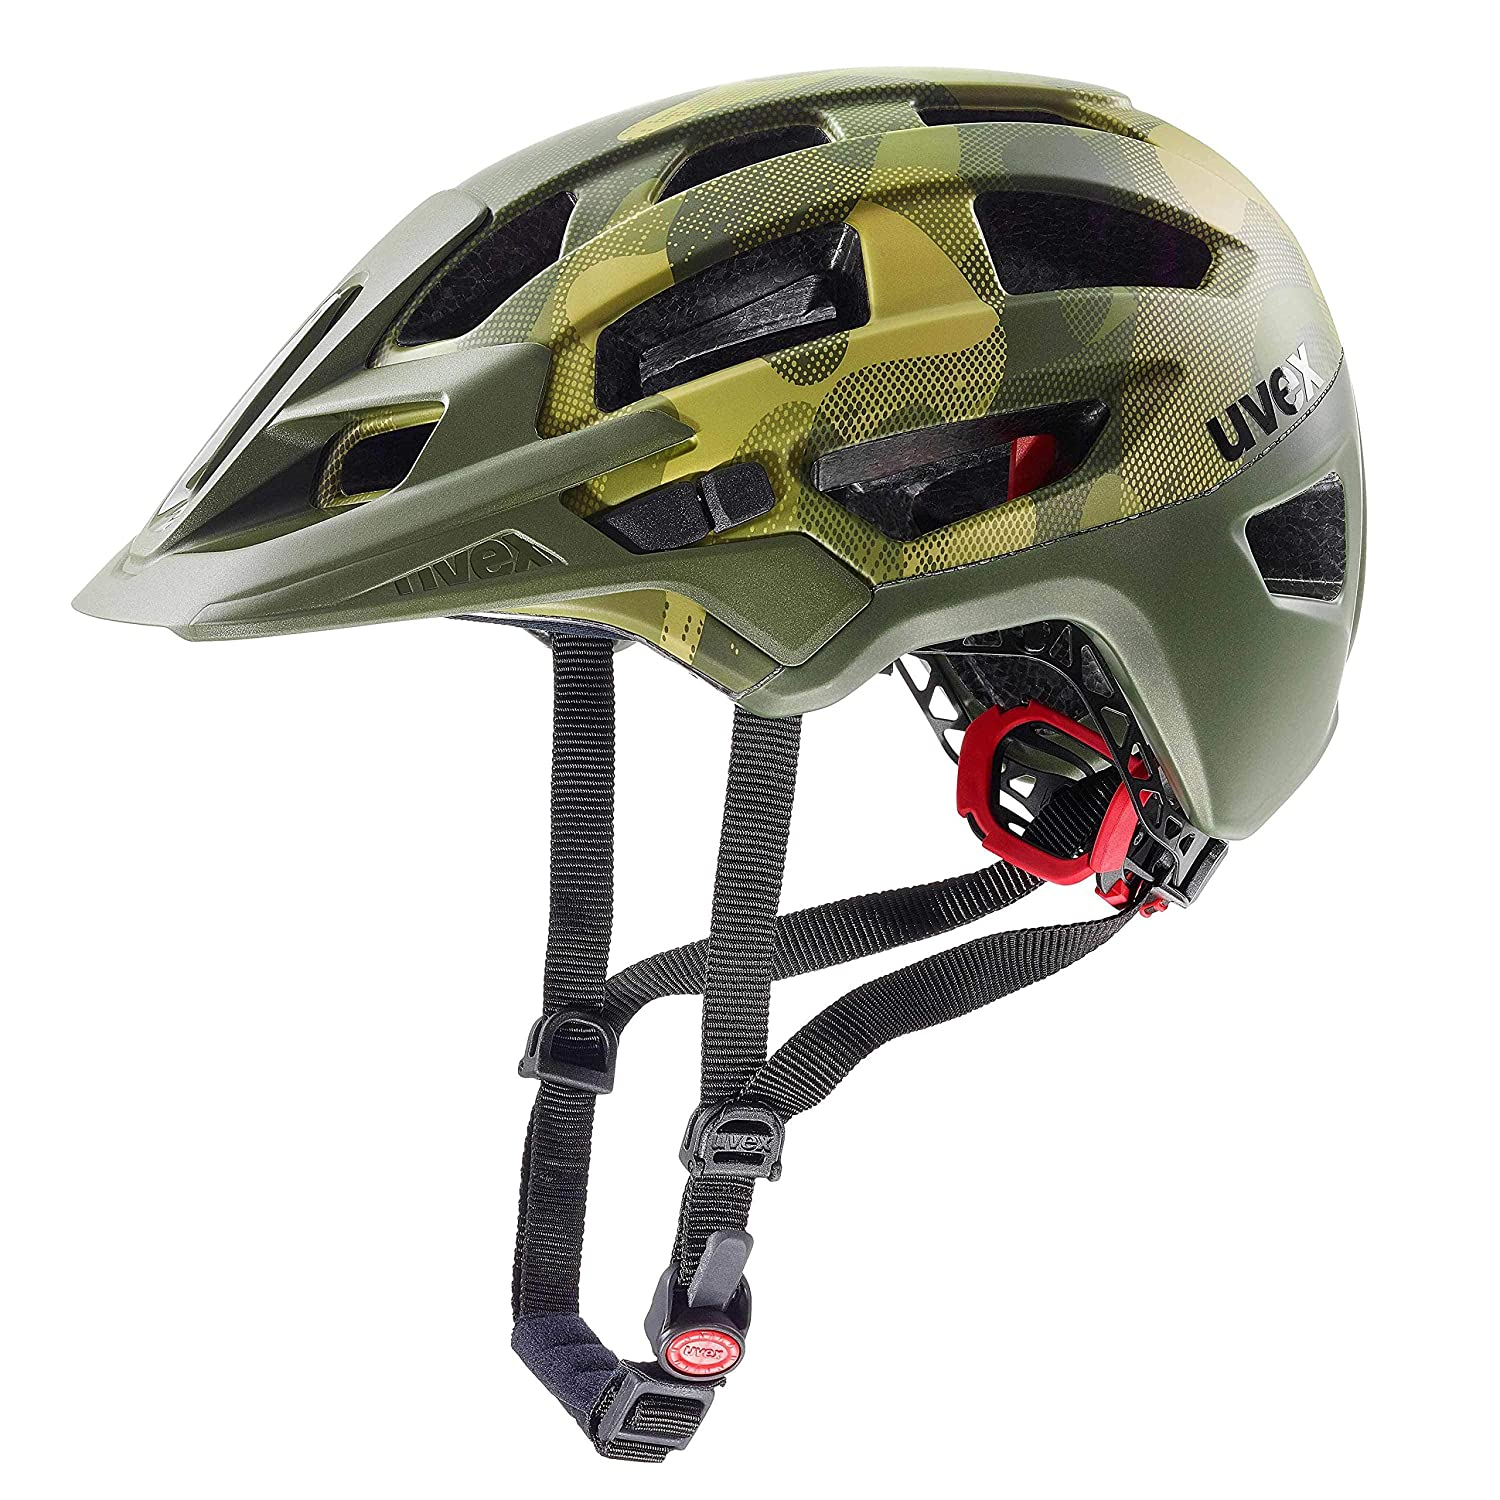 Uvex Finale 2.0 Mountainbike Helm - Camouflage mat